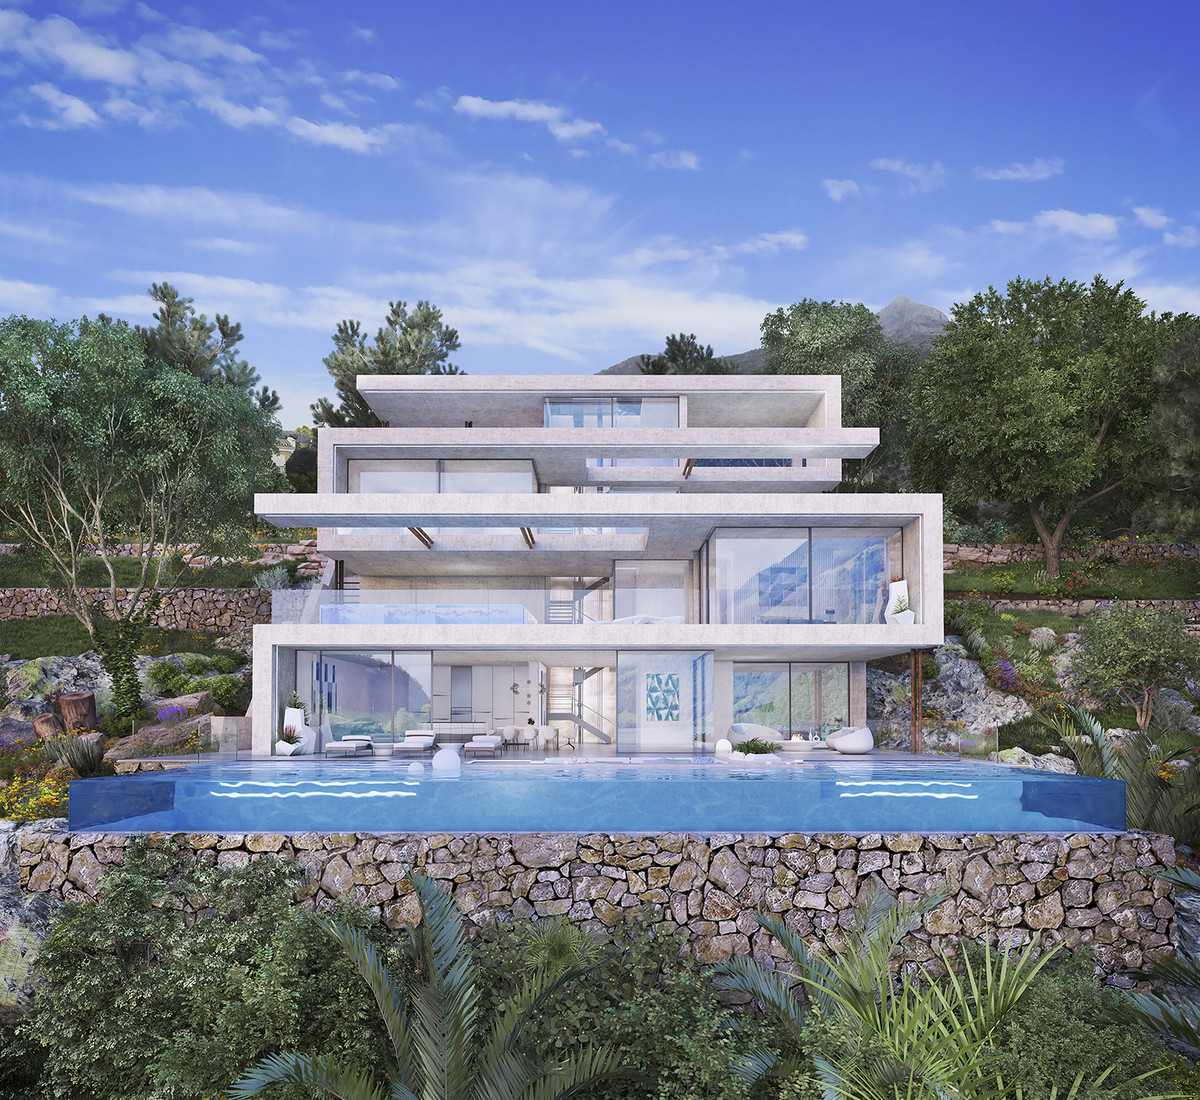 New Development: Prices from € 1,690,000 to € 1,690,000. [Beds: 4 - 4] [, Spain